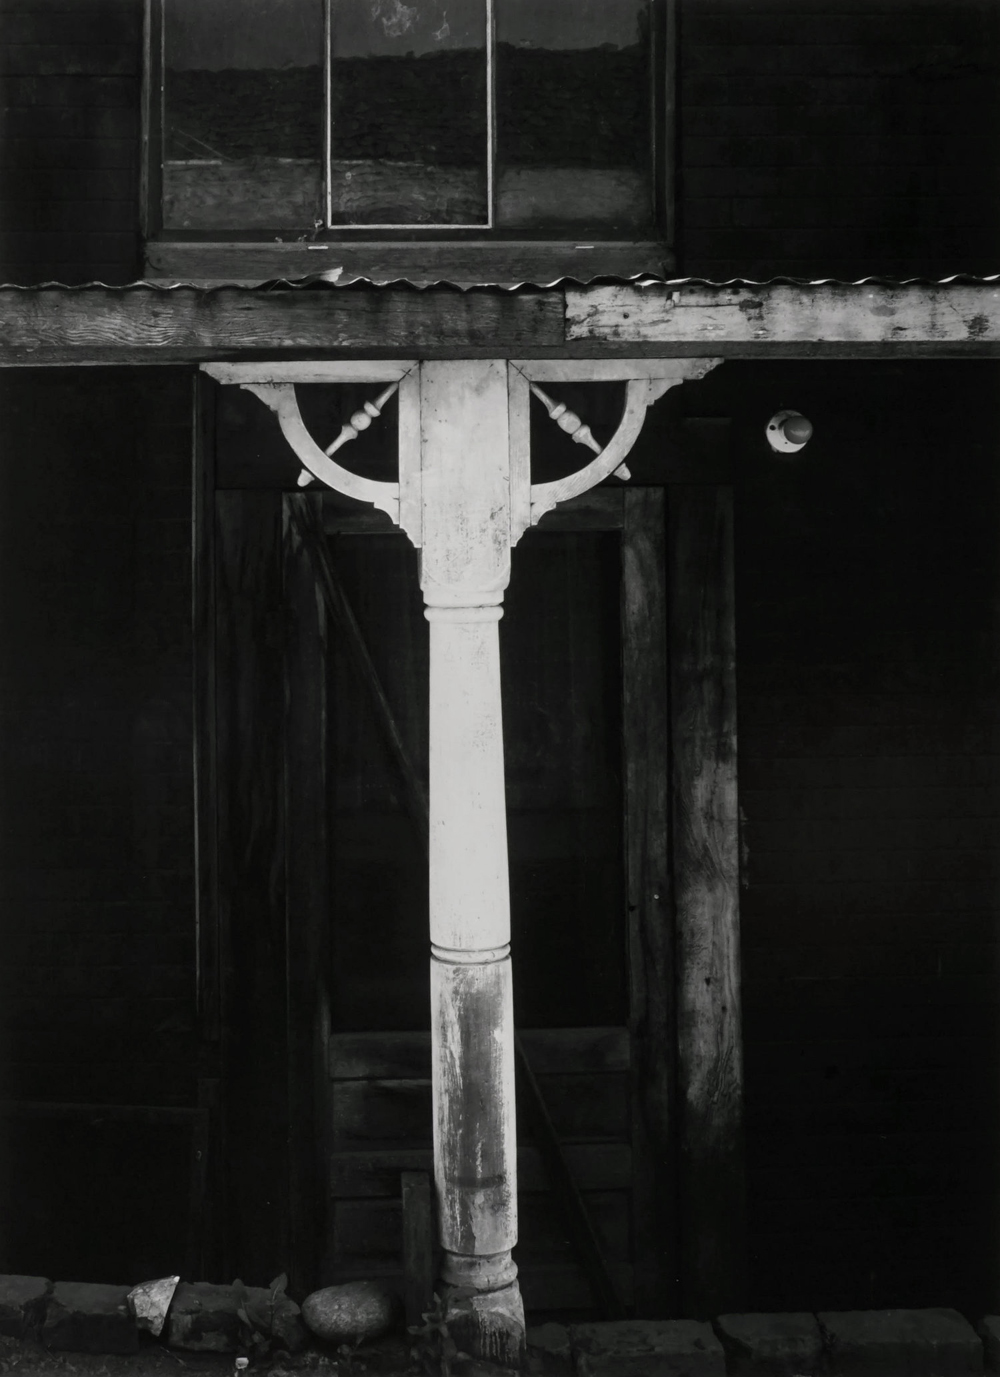 Ansel Adams - White Post and Spandrel, 1953